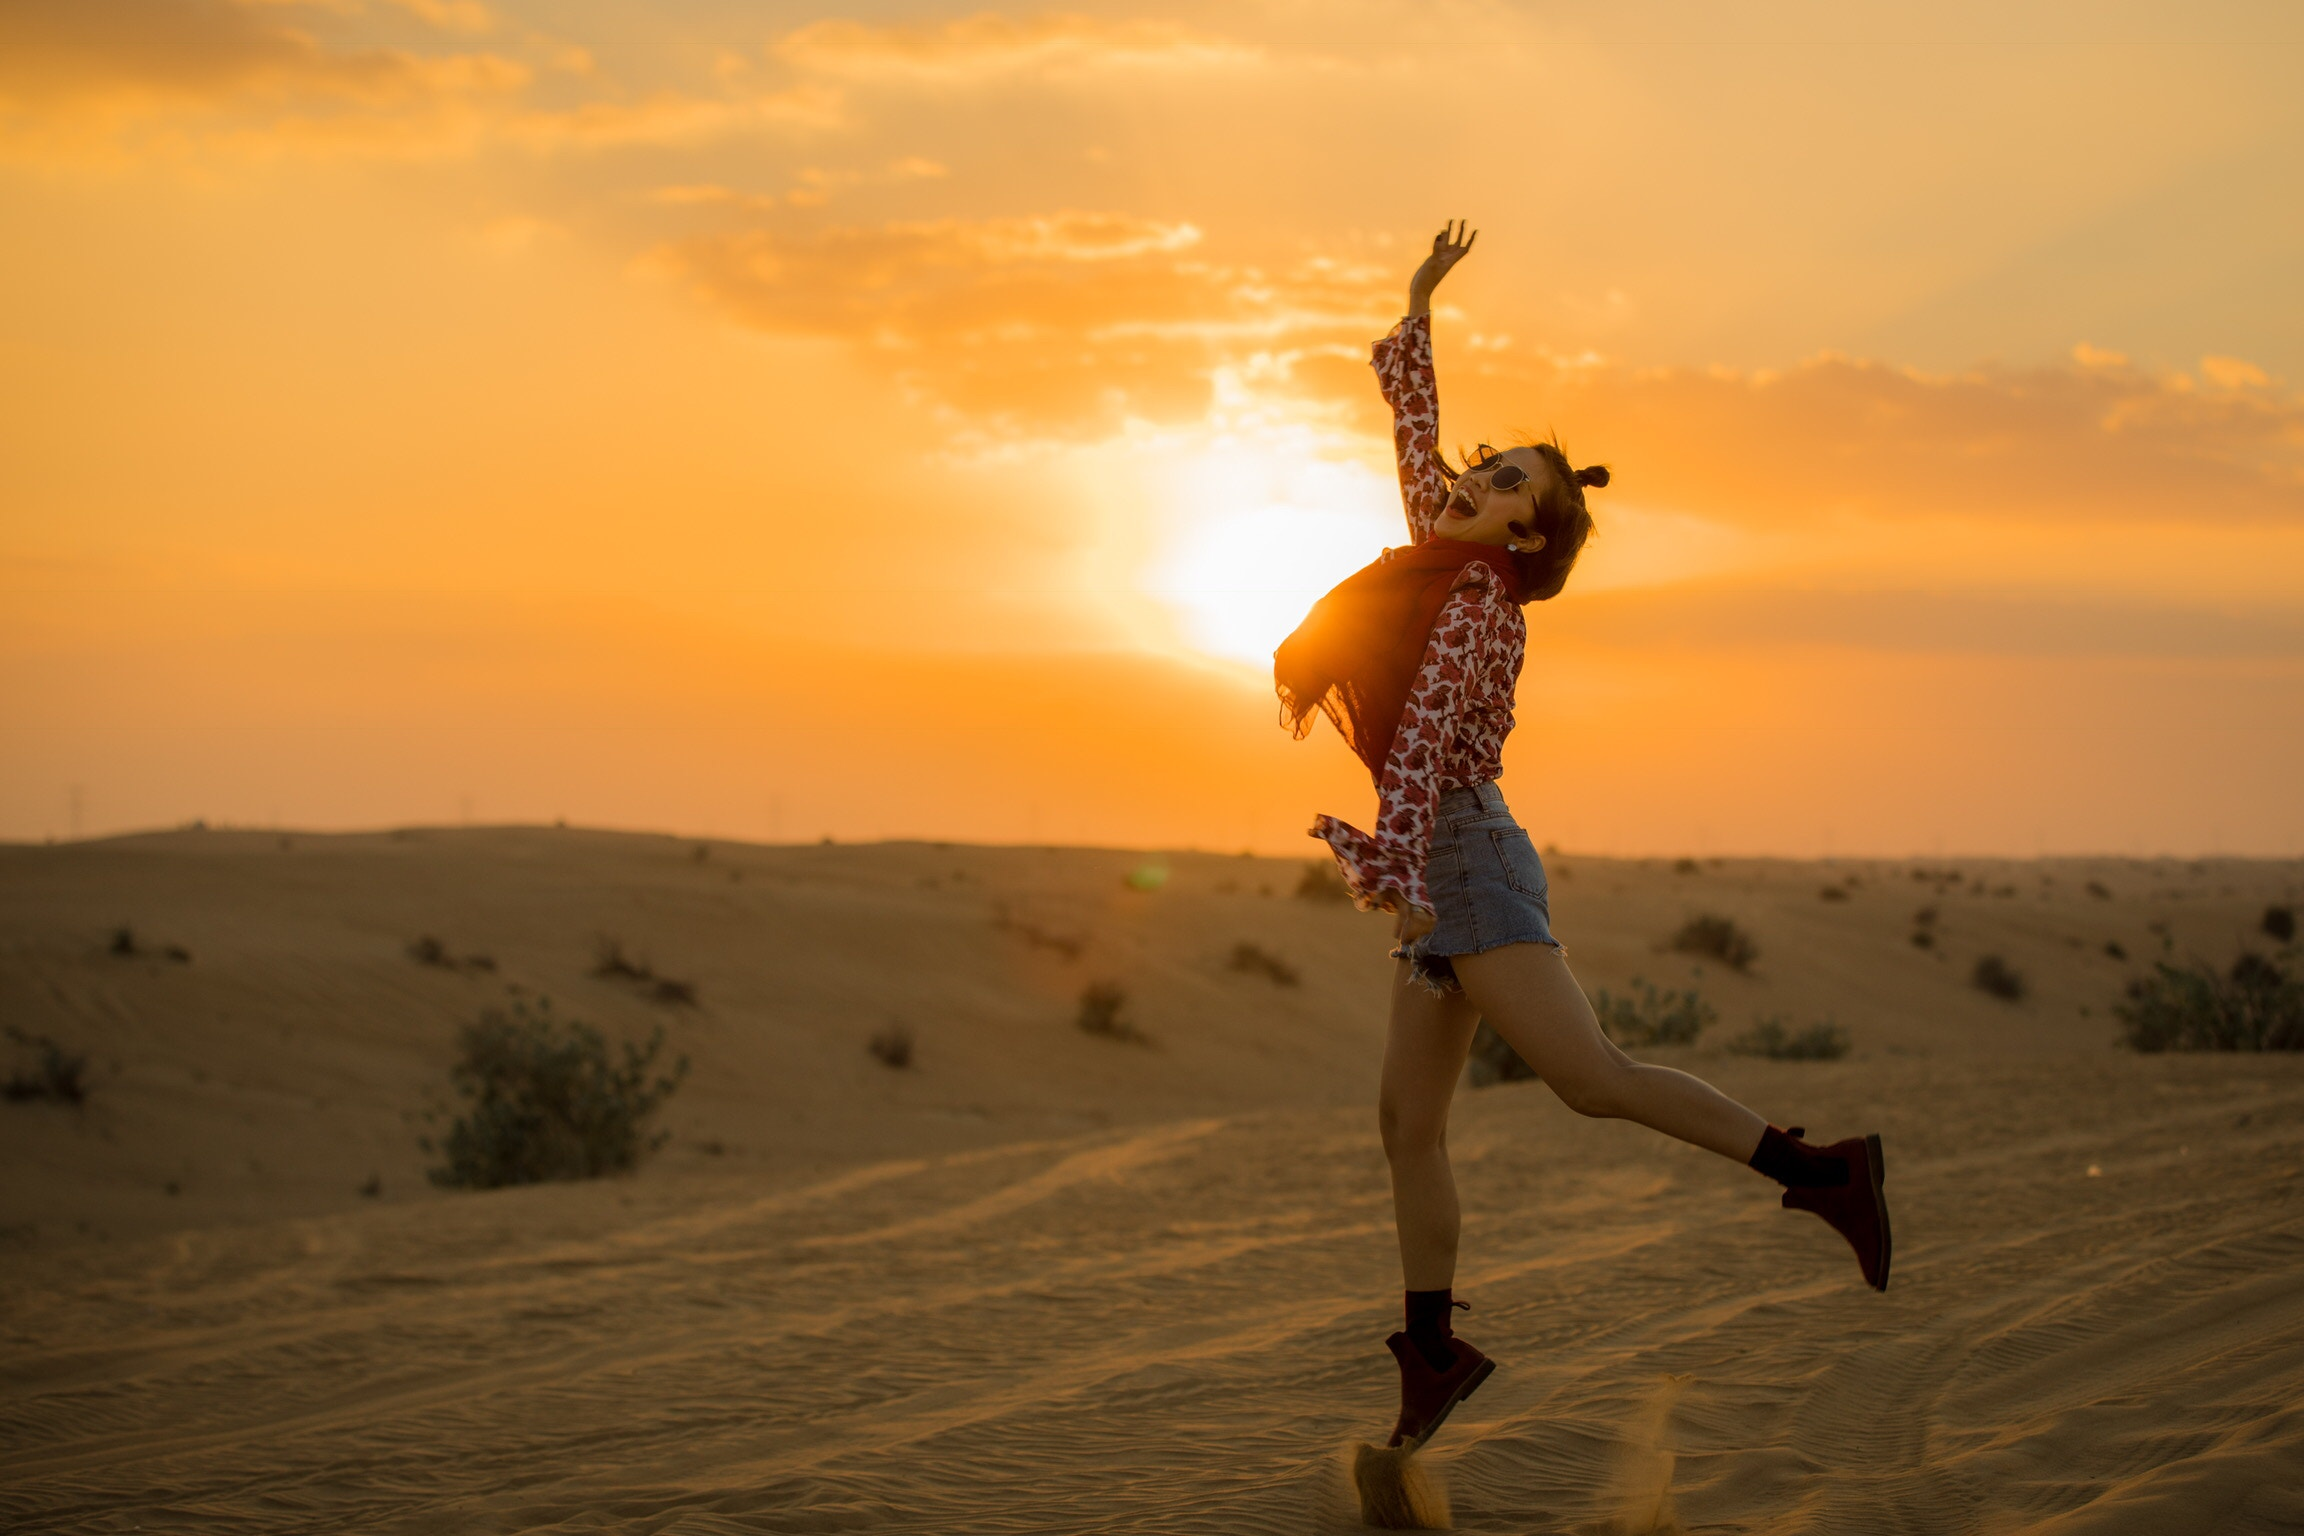 girl-jumping-happy-photography-sunset